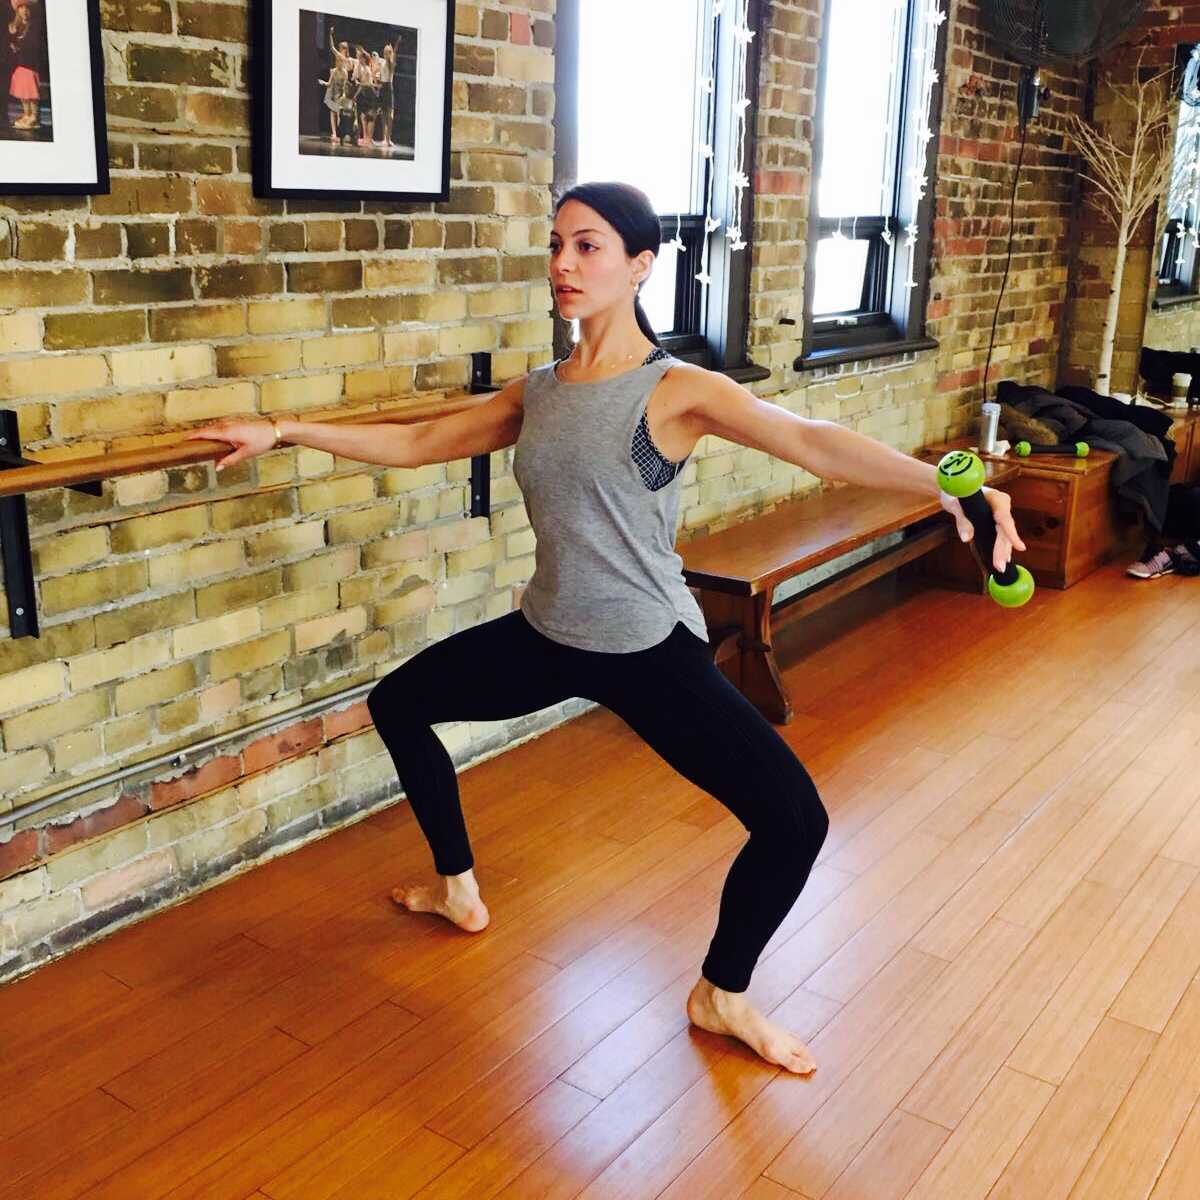 toronto, adult dance lessons, dance exercise classes, zumba lessons, nia dance